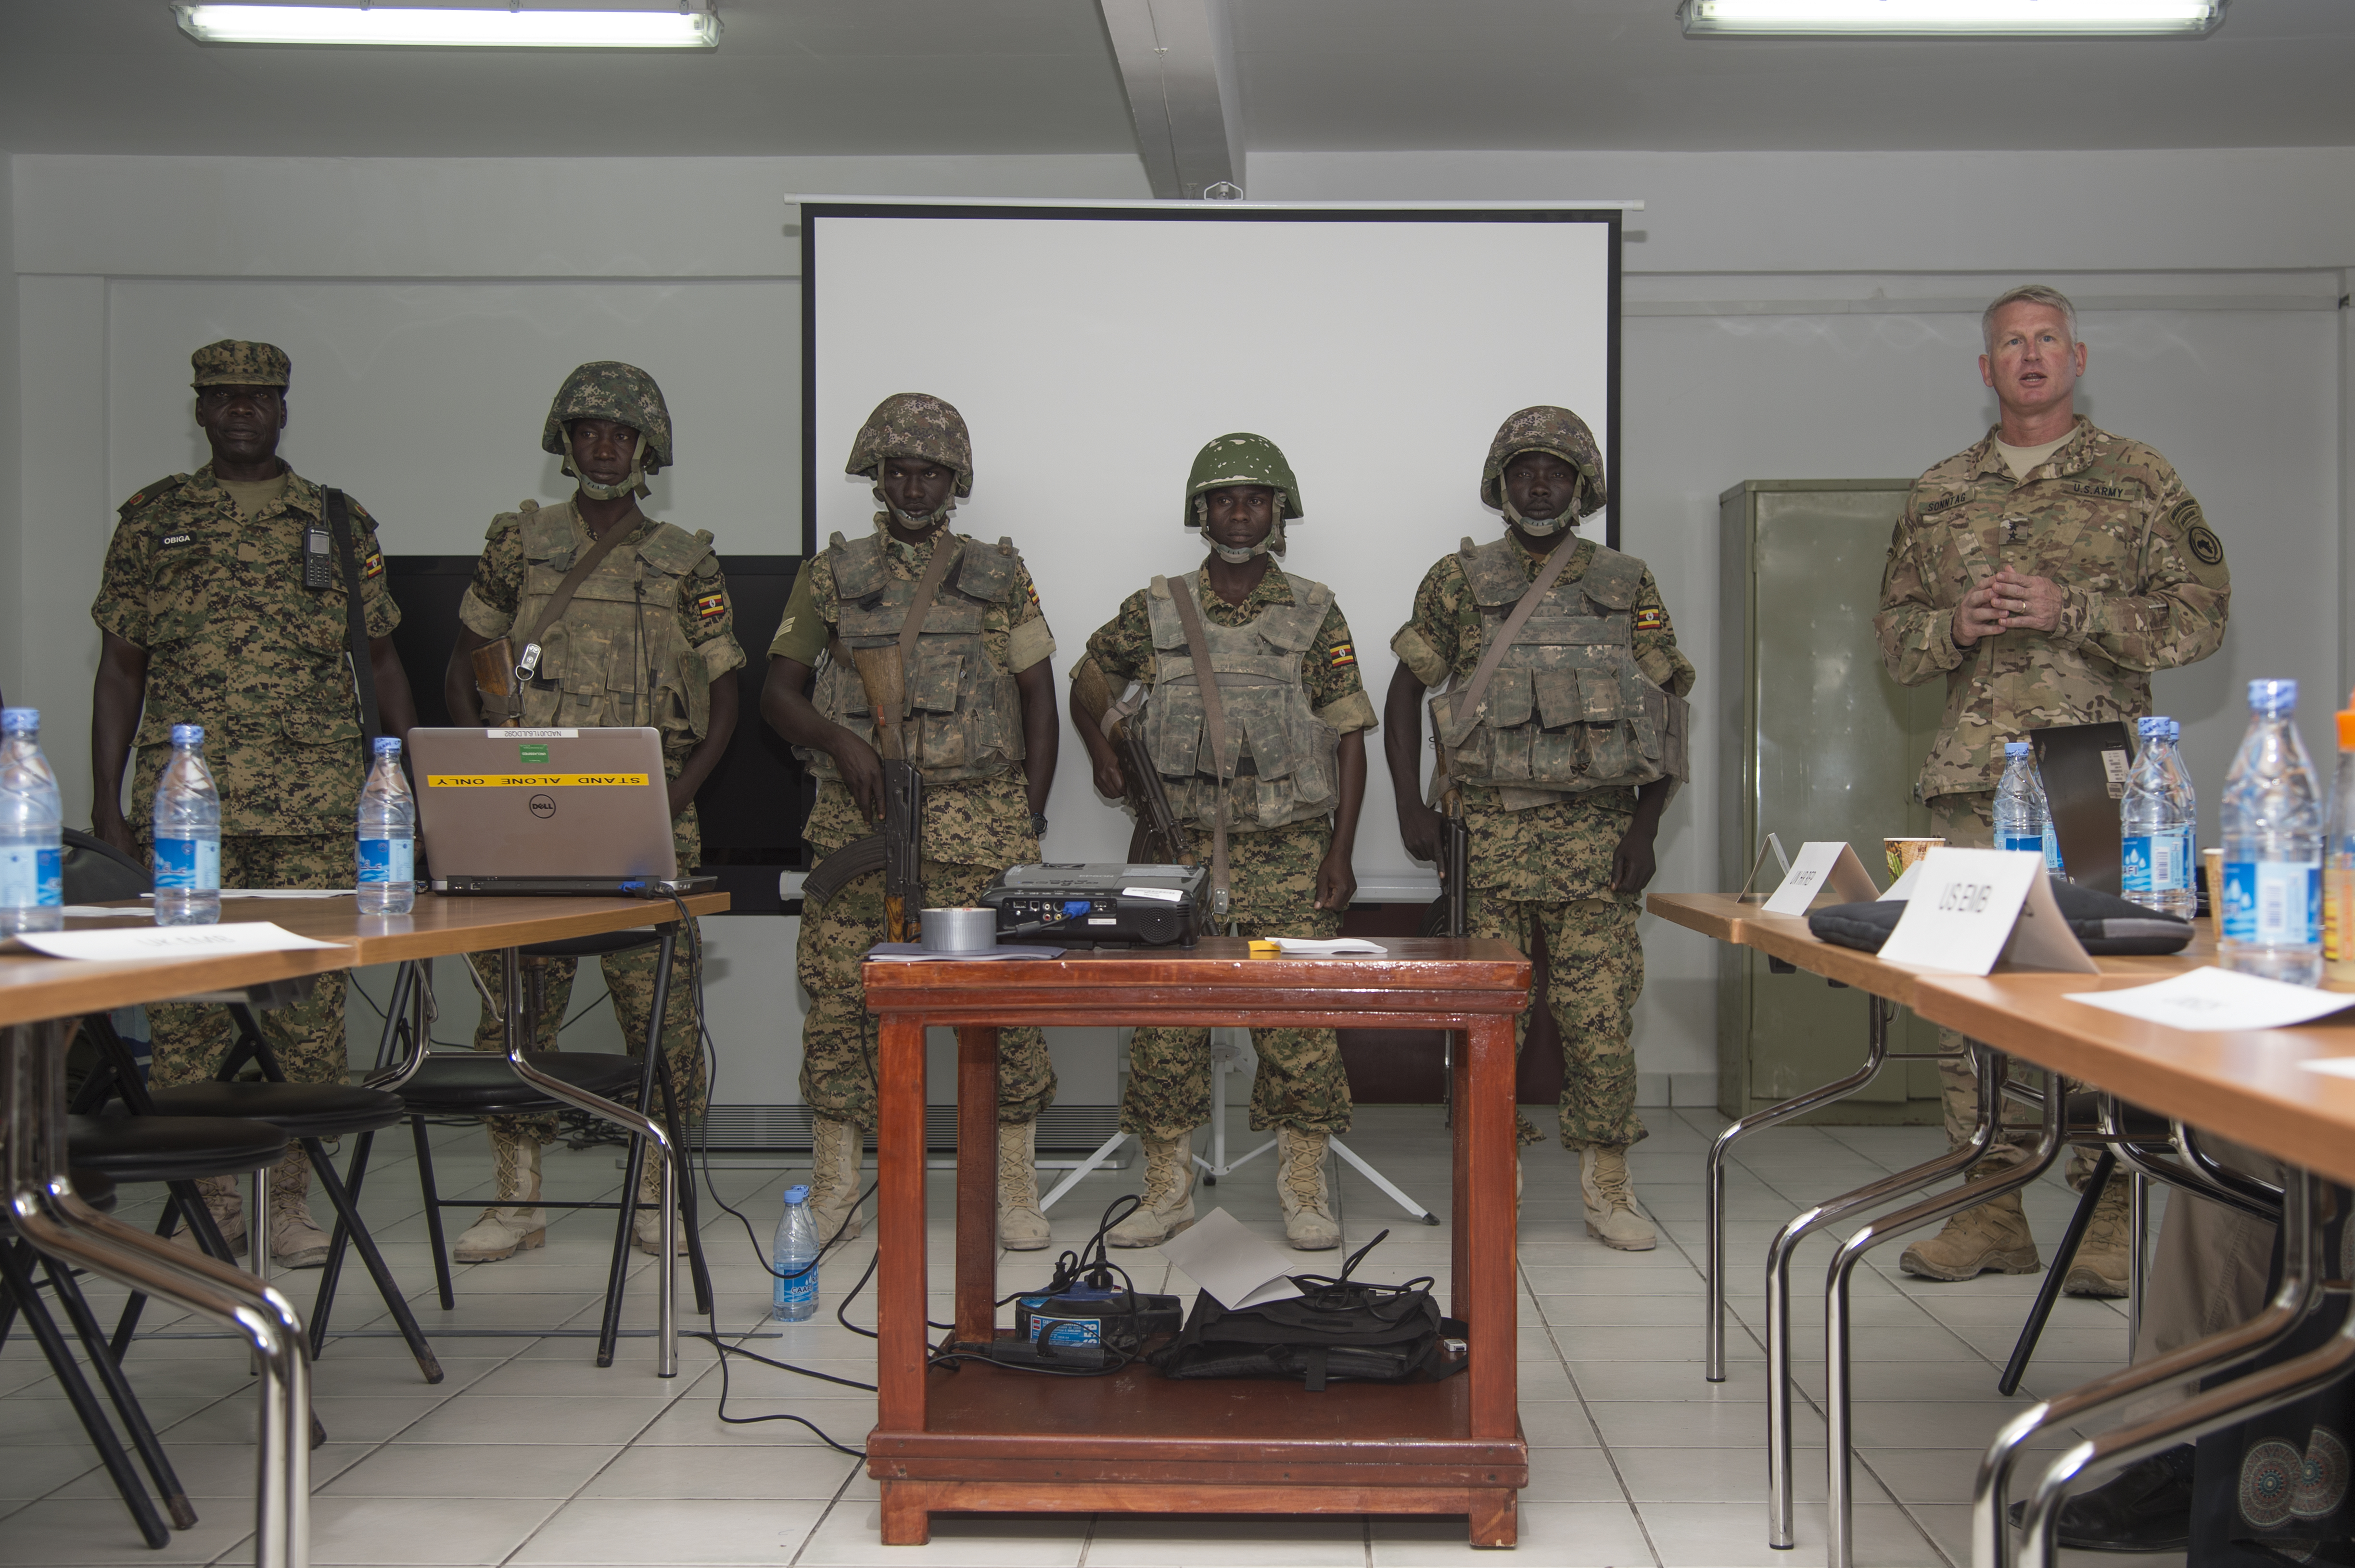 Maj. Gen. Kurt Sonntag, commanding general of the Combined Joint Task Force-Horn of Africa, right, recognizes members of the Ugandan military responsible for defeating a vehicle borne IED attack while serving with the African Union Mission in Somalia during the SNA Symposium in downtown Mogadishu, Jan. 11, 2017. AMISOM is an active, regional peacekeeping mission operated by the African Union with the approval of the United Nations in Somalia.